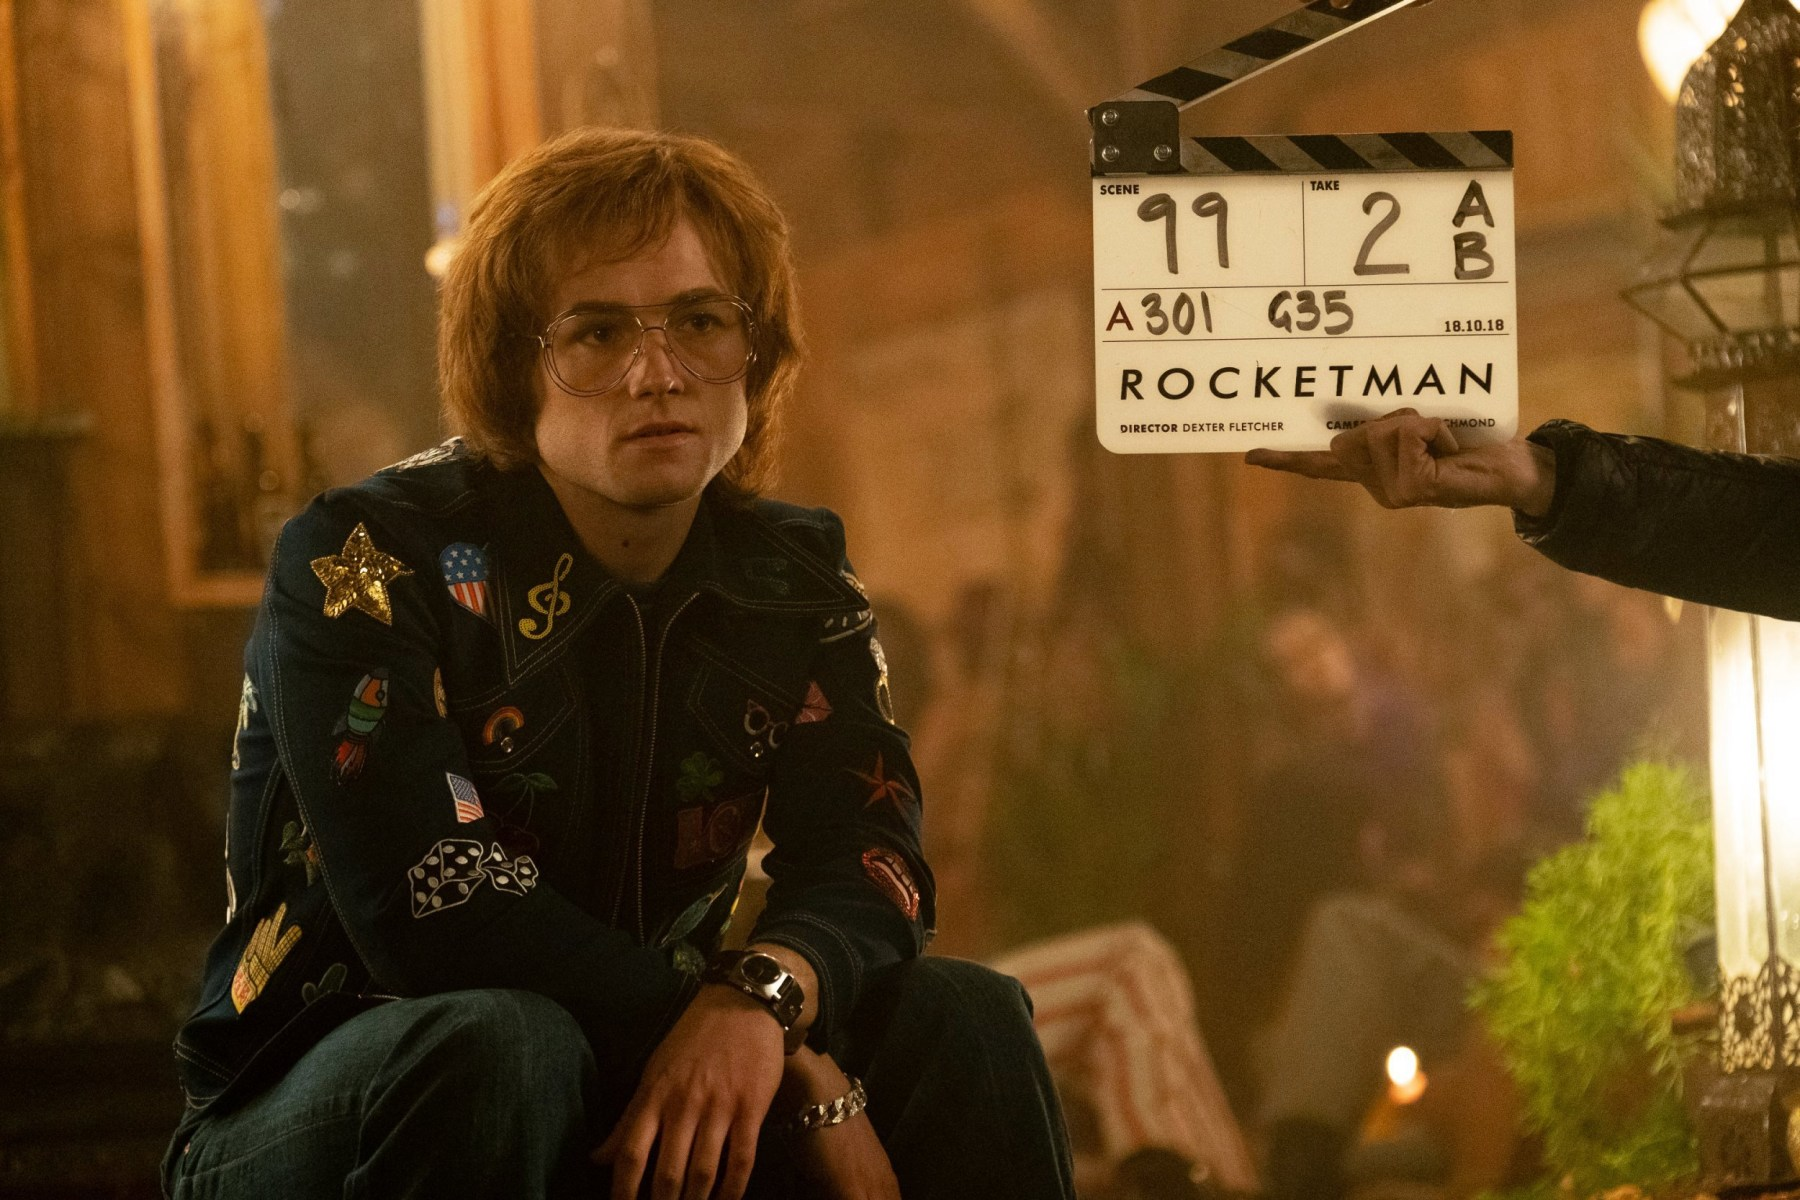 On Set Of Rocketman Behind the Scenes